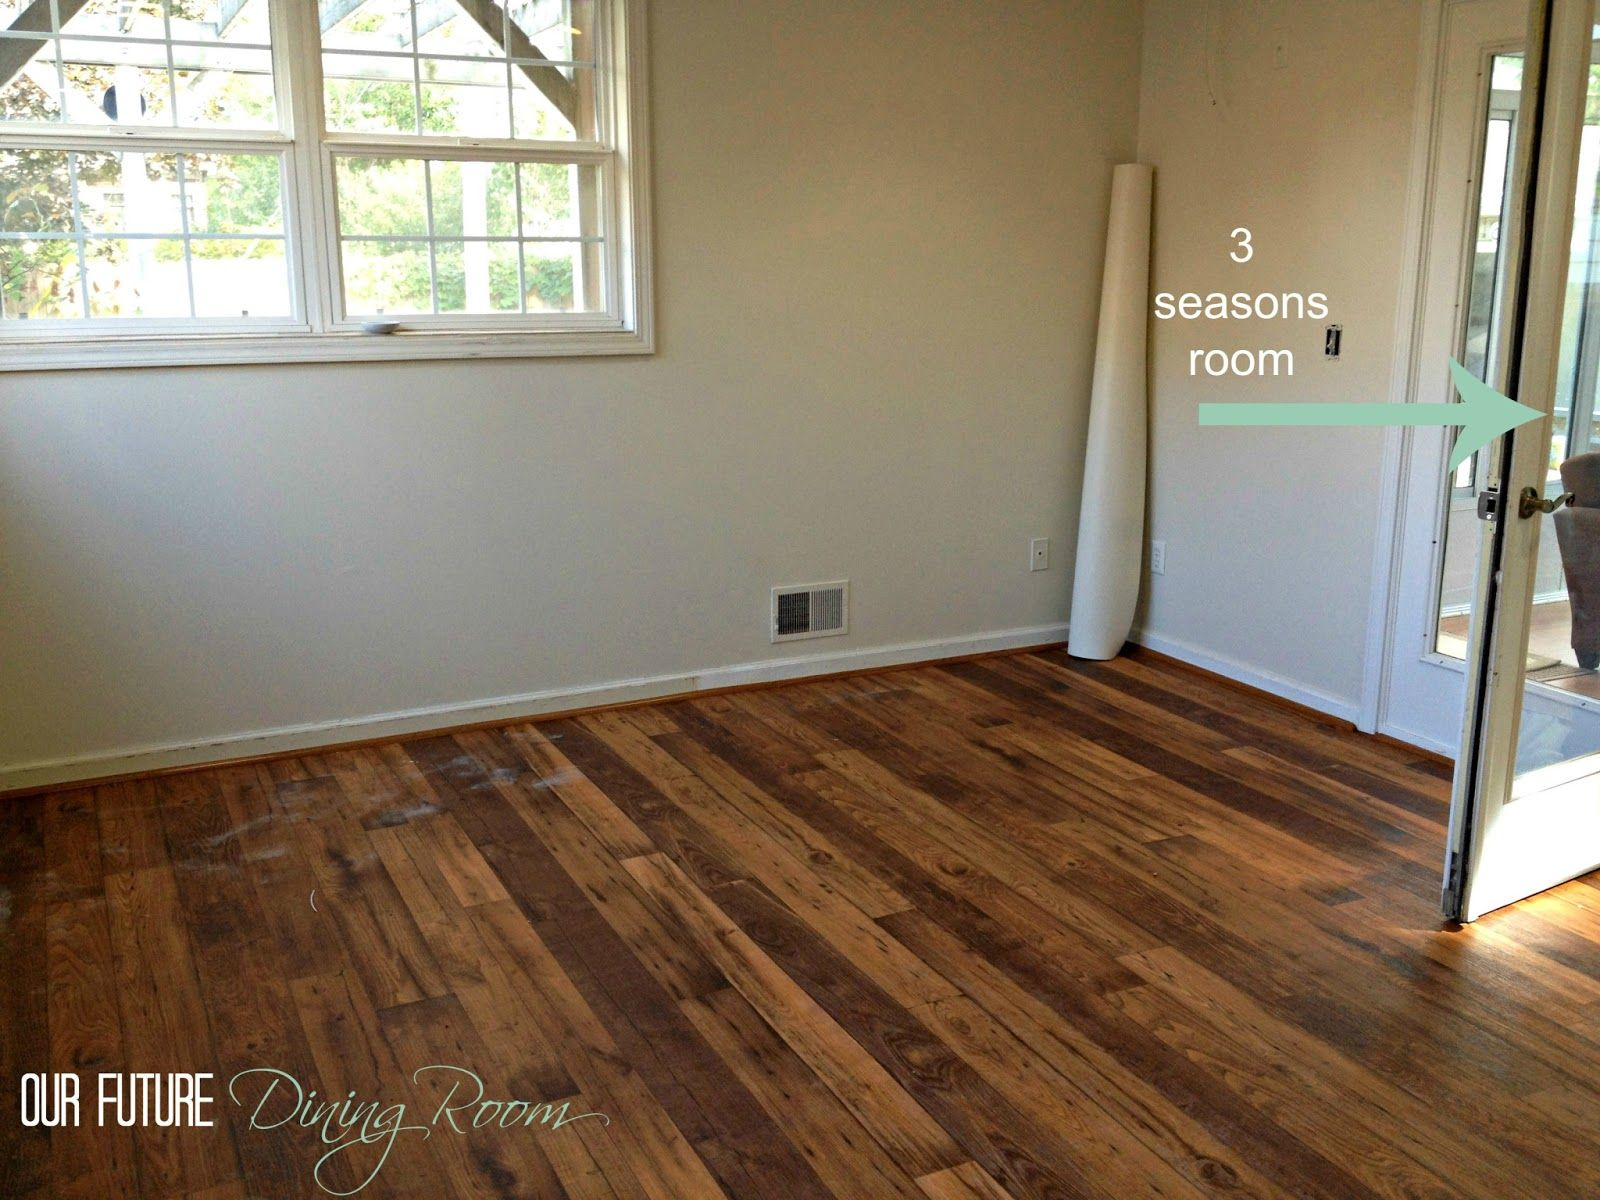 kitchen flooring wood floors in kitchen linoleum wood flooring faux hardwood we went with a textured vinyl flooring